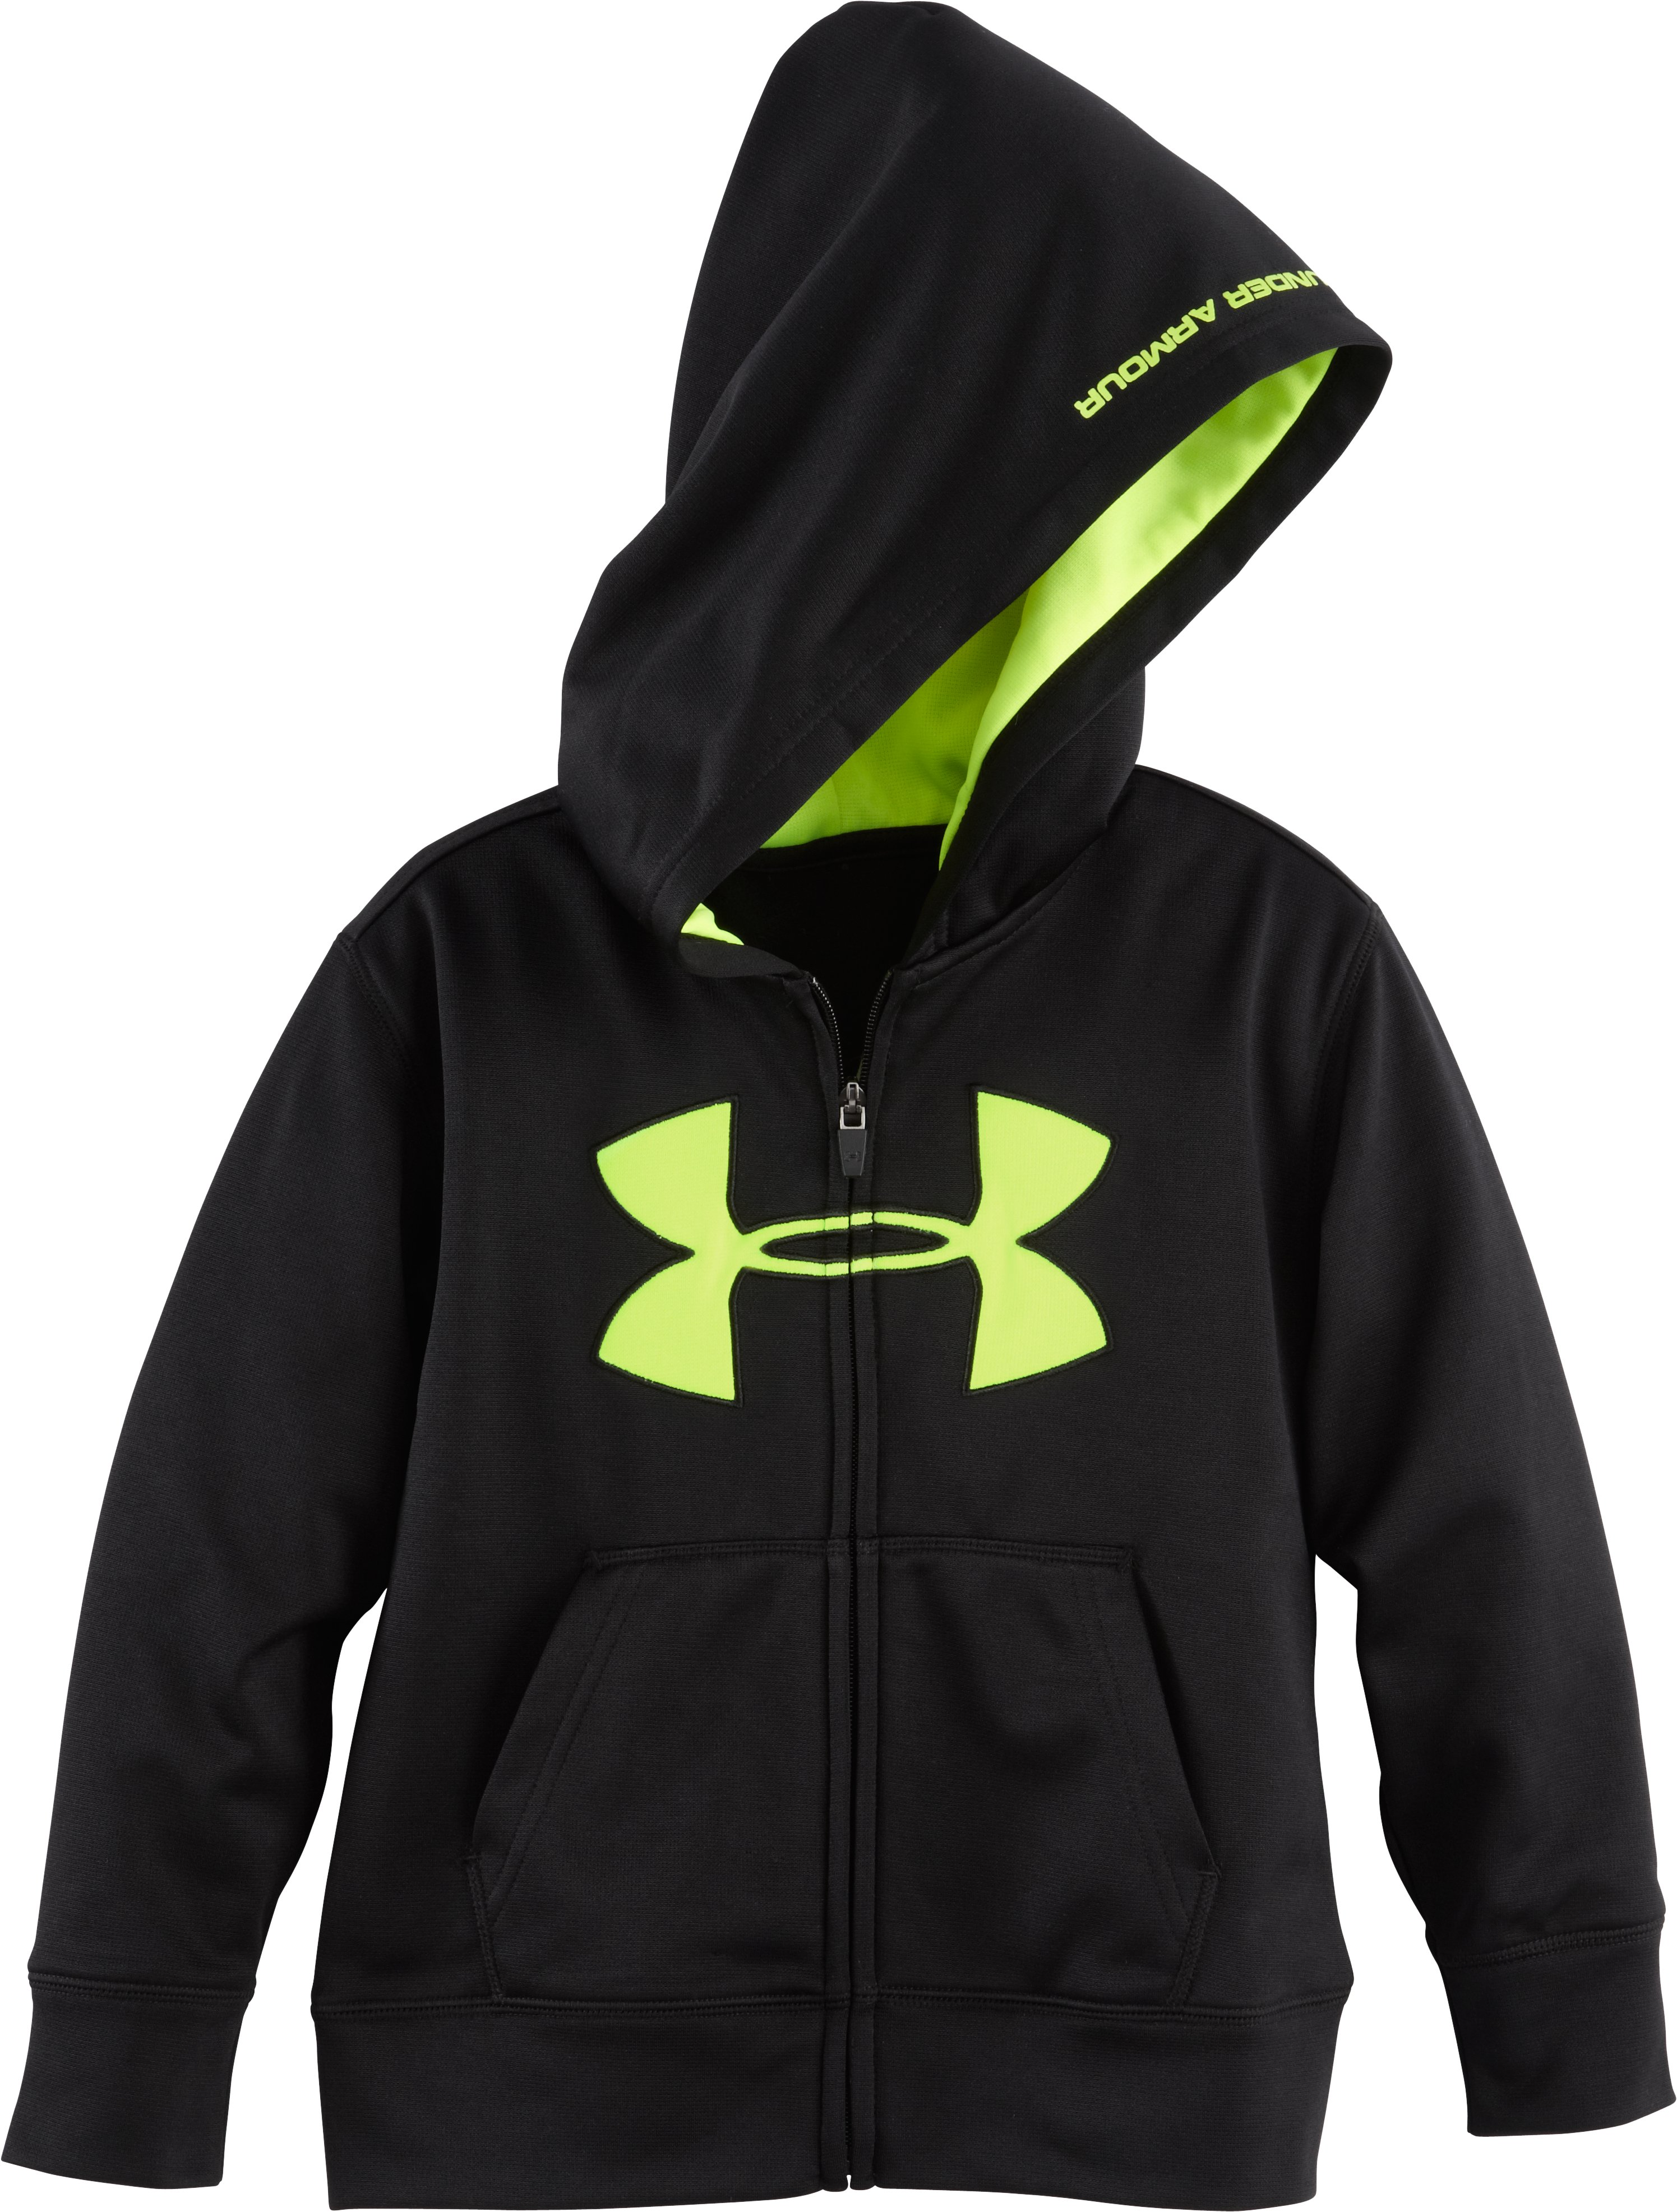 Boys' Pre-School UA Big Logo Hoodie, Black , Laydown